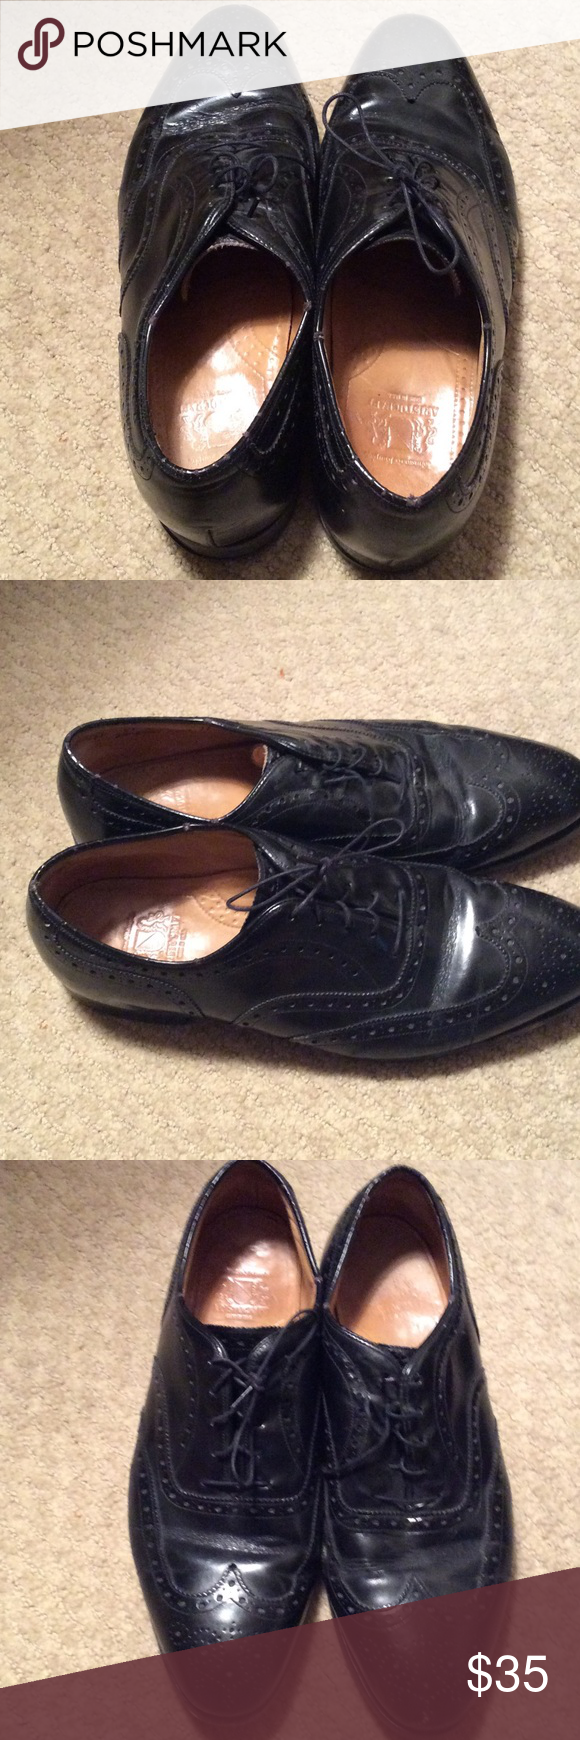 72283f87851 Aristocrats men s shoes Preowned gently used shoes very good condition  Aristocraft Shoes Loafers   Slip-Ons